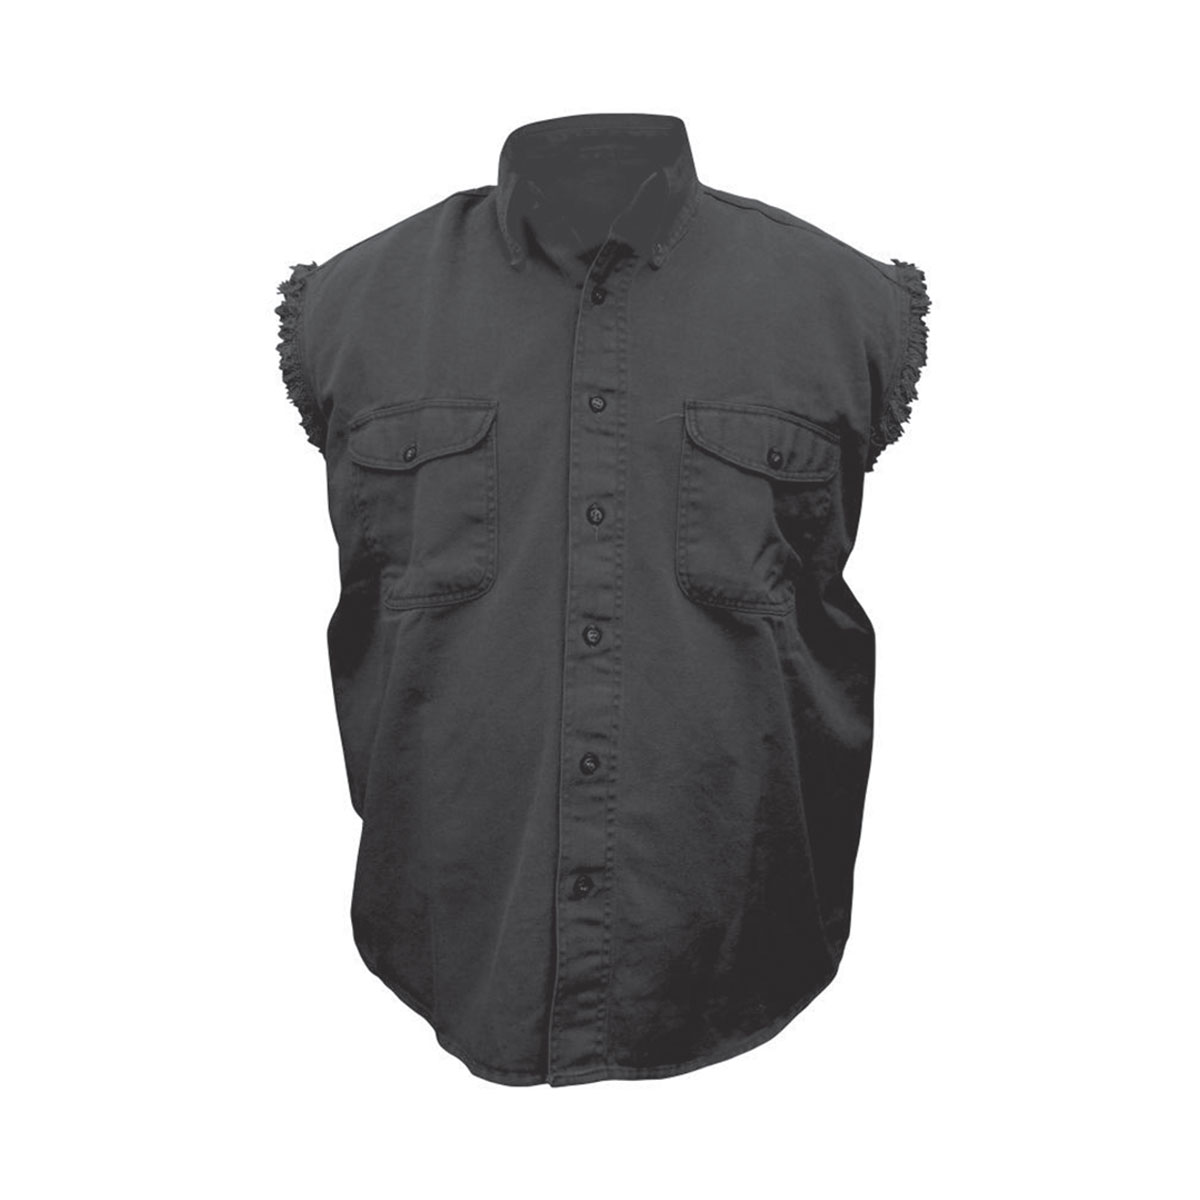 Allstate Leather Inc. Men's Cotton Button Down Black Sleeveless ...